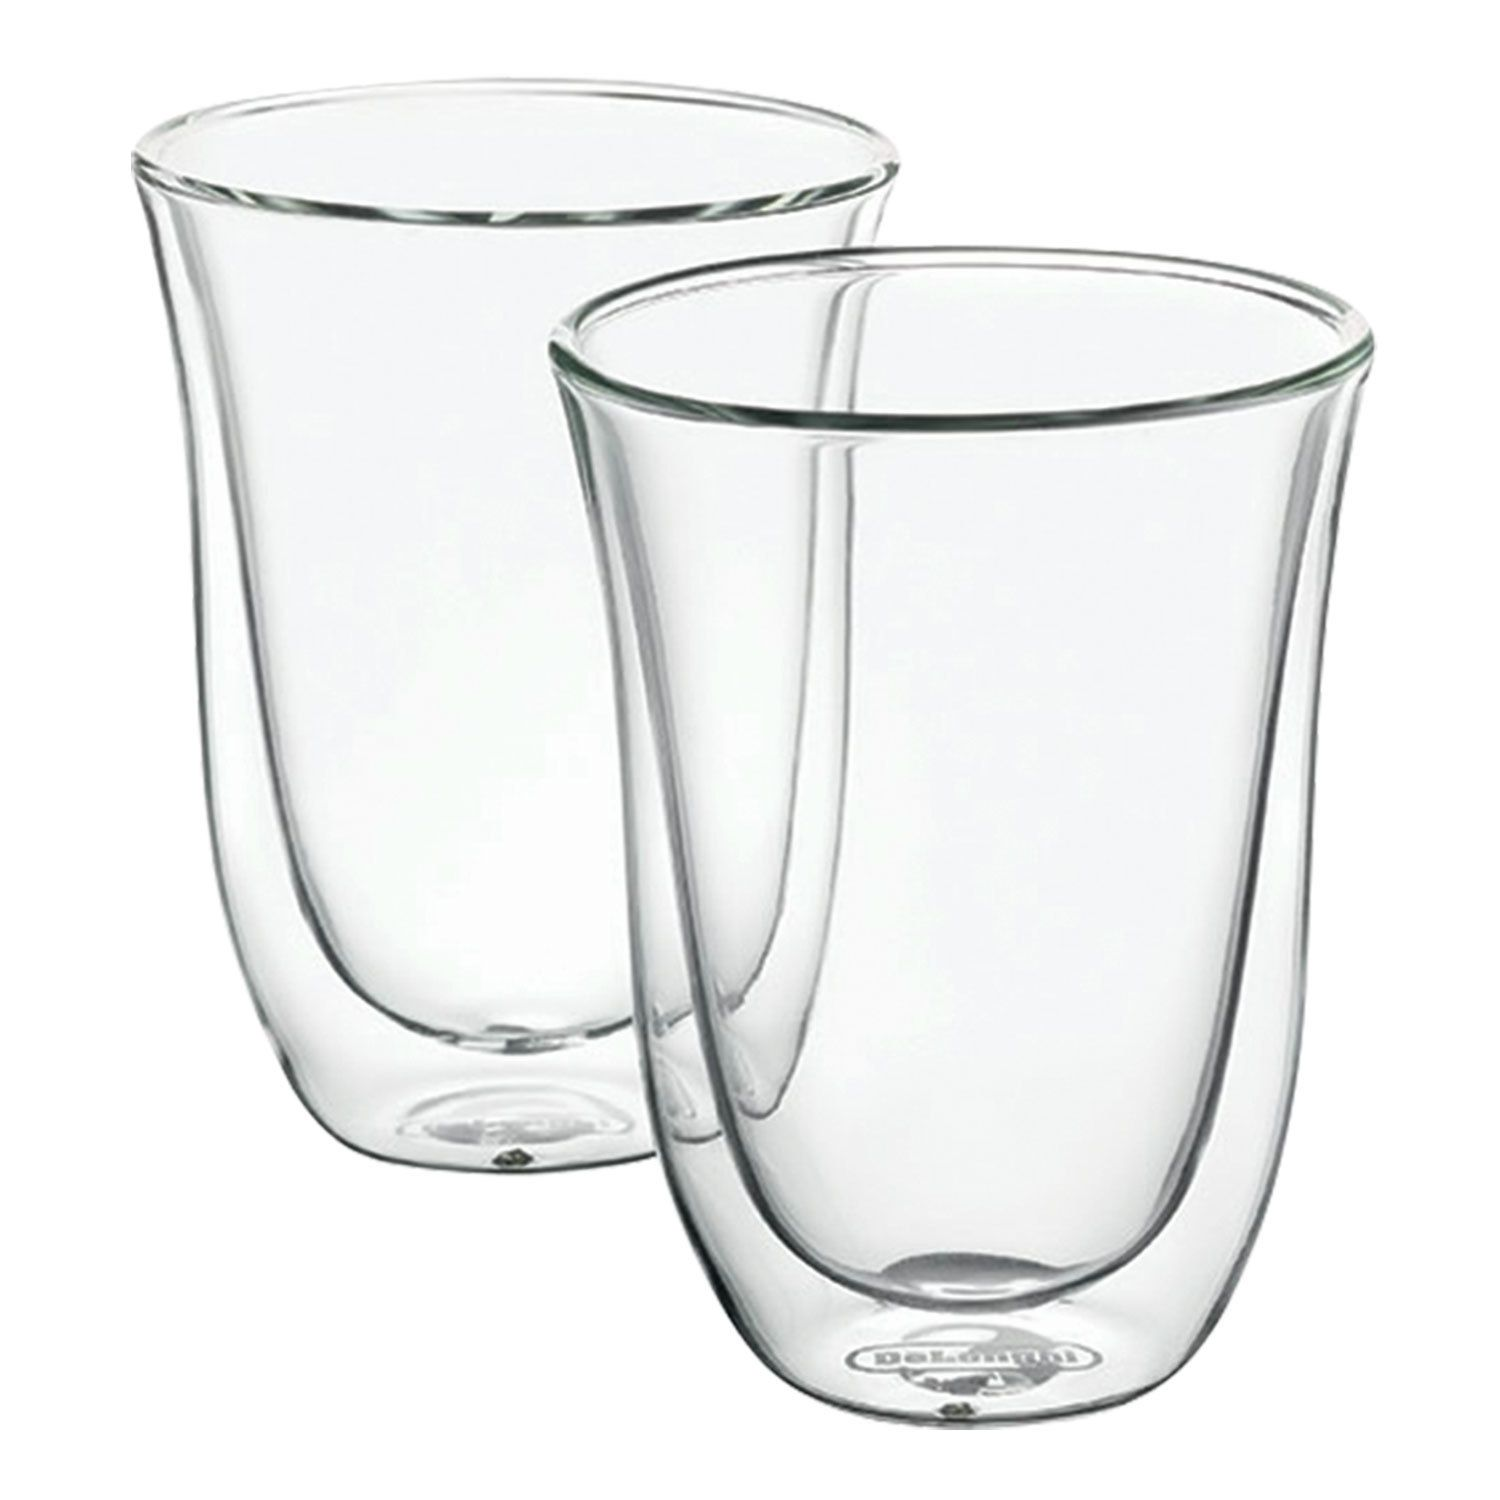 Set of coffee DELONGHI for latte for 2 people, glass, 220 ml, transparent